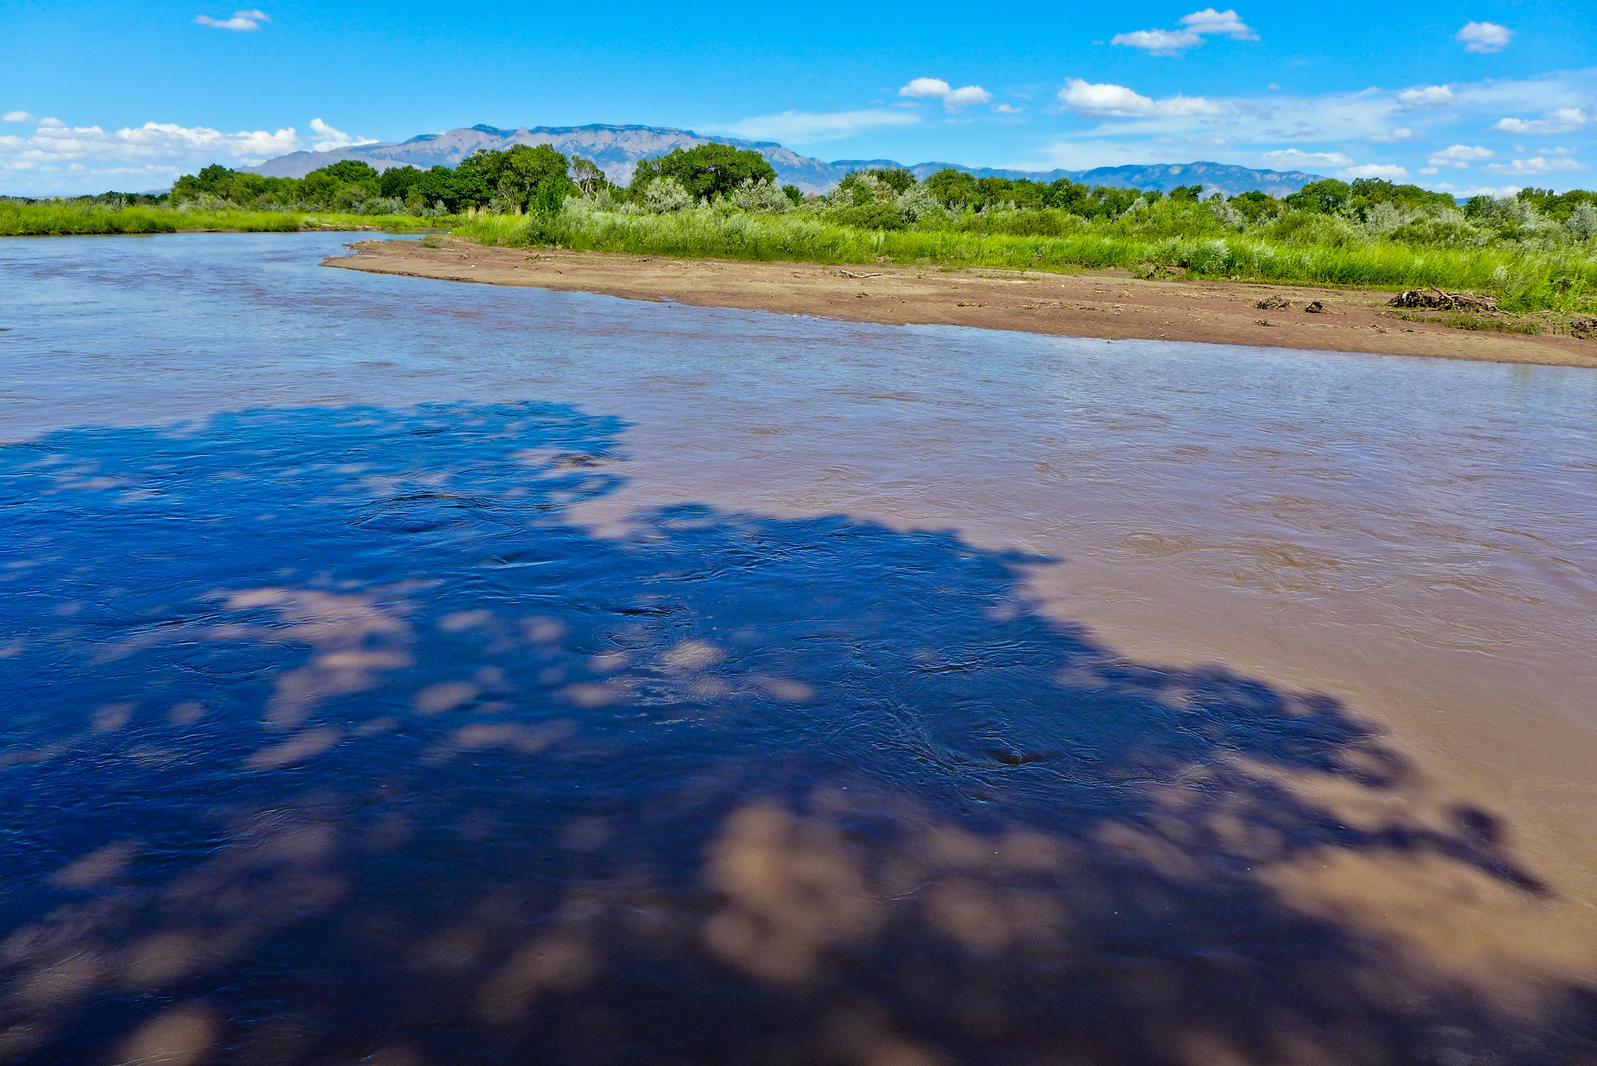 The Rio Grande, Albuquerque